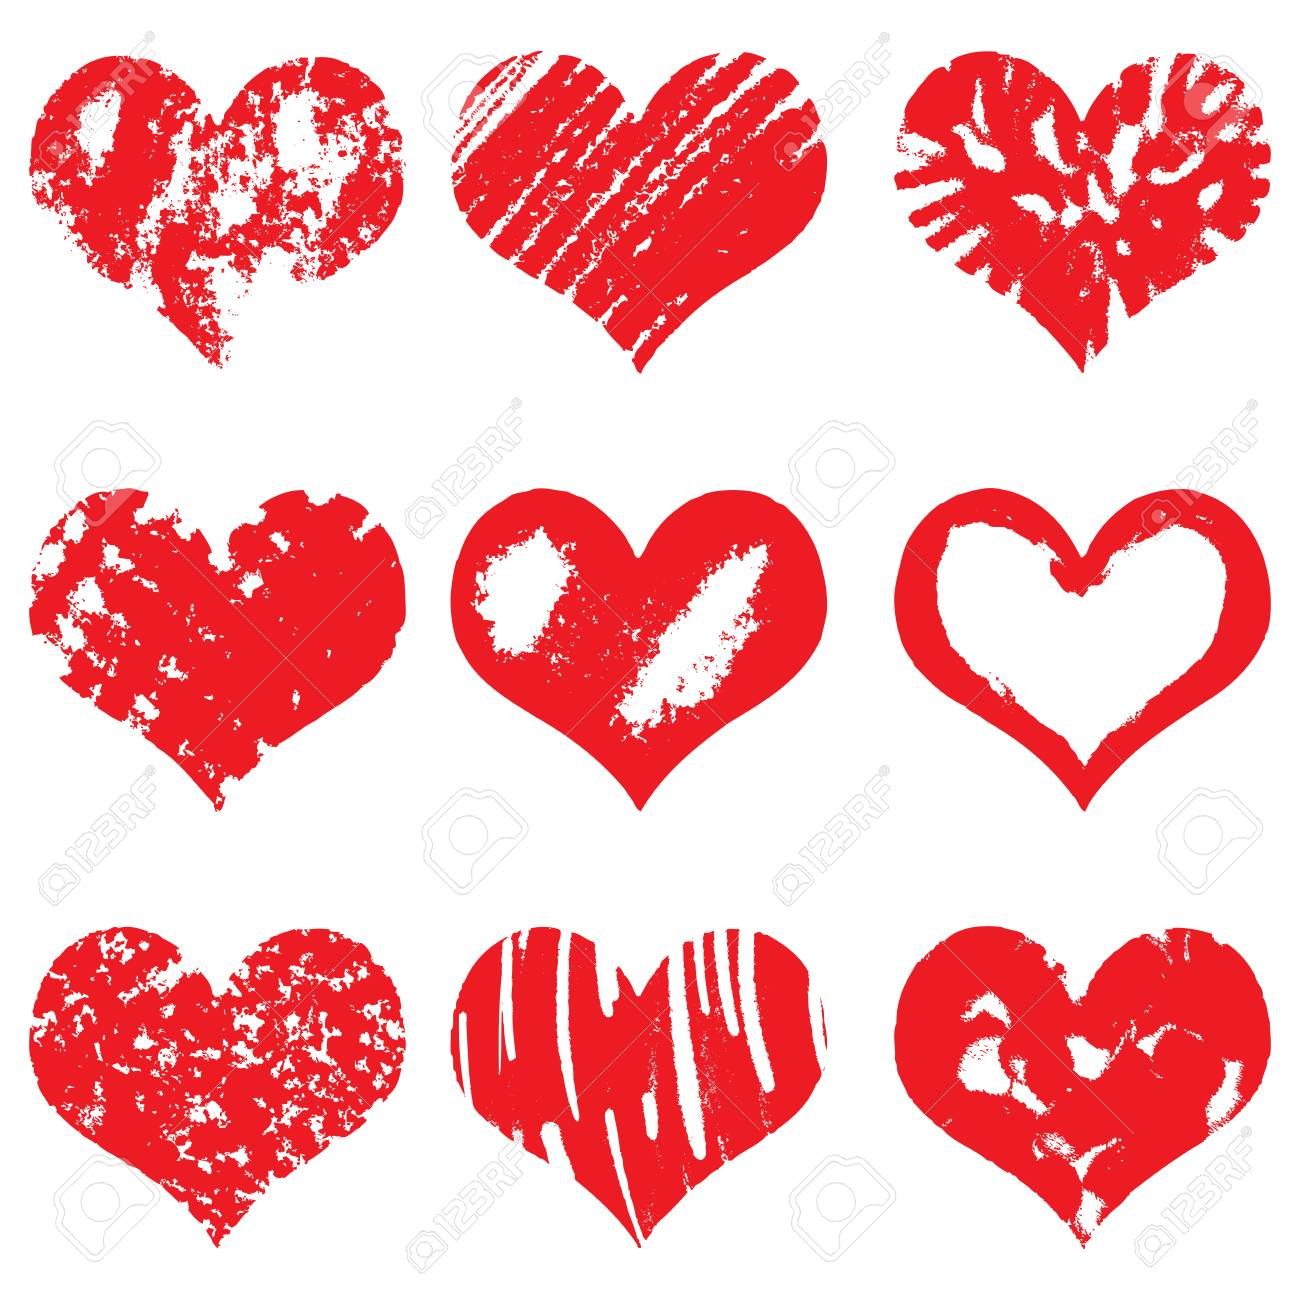 hand drawn heart shapes icons in red color for valentines and